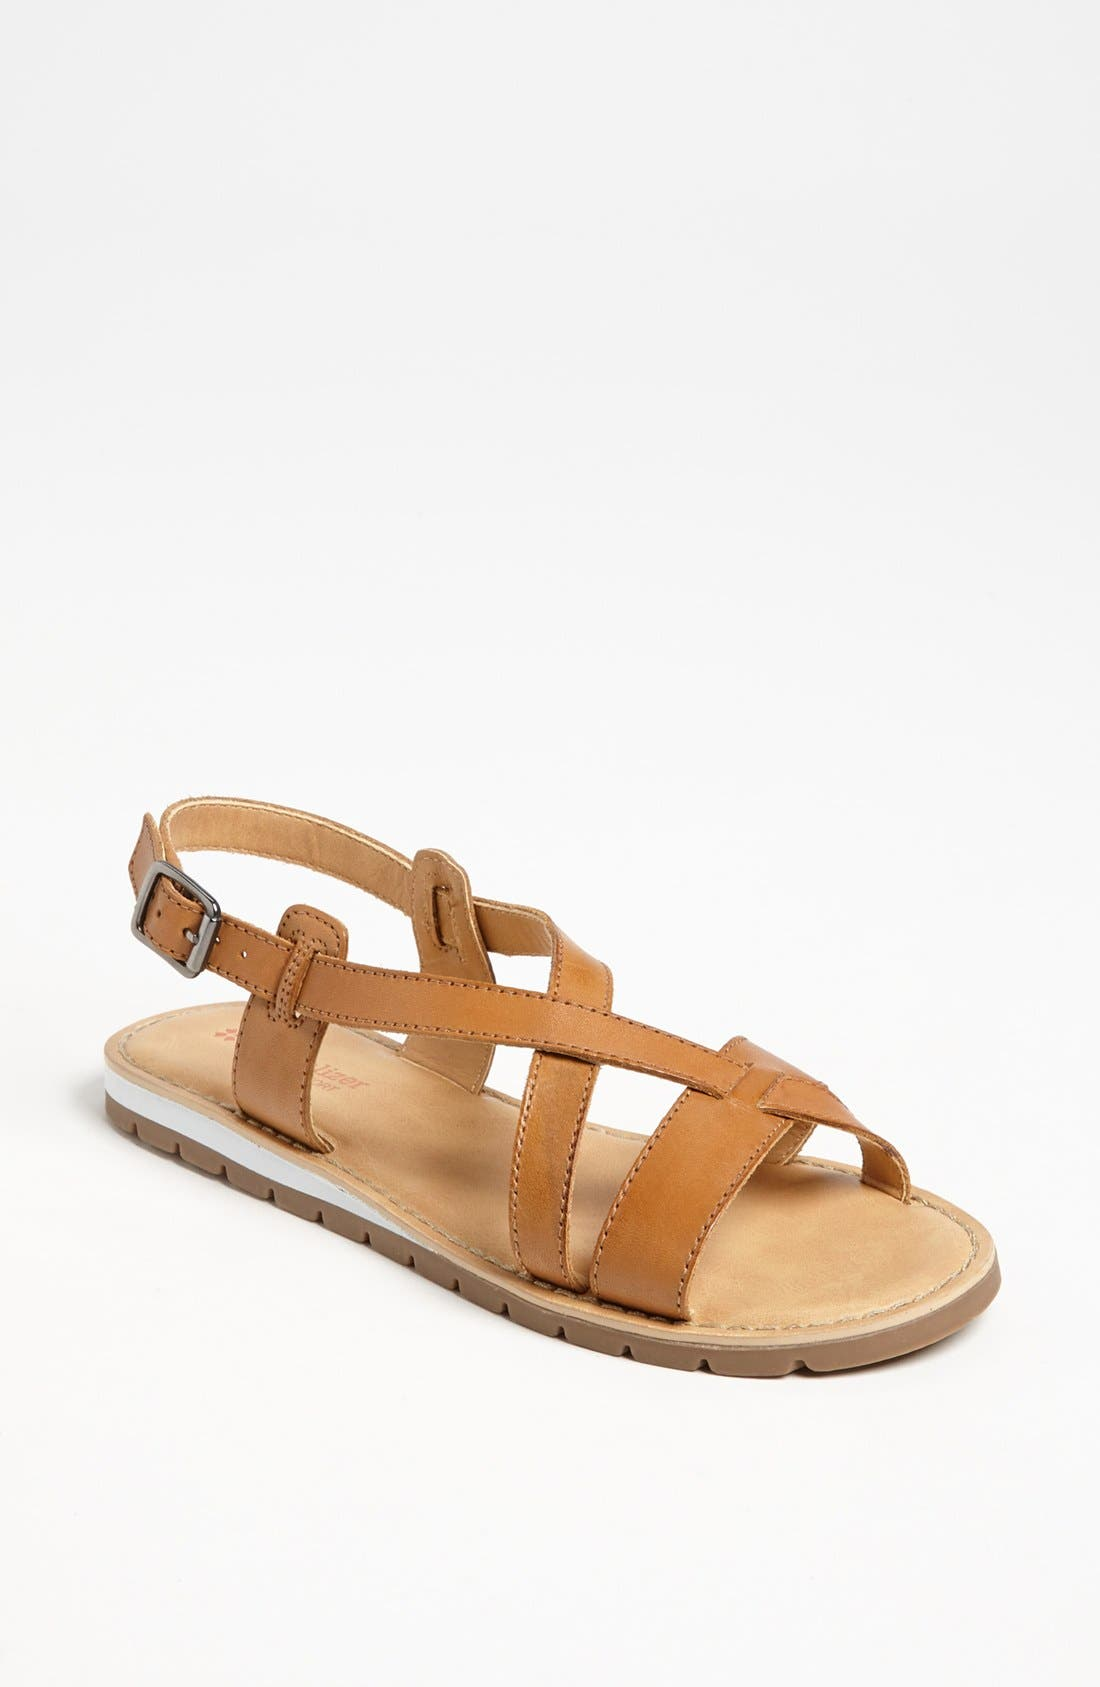 Alternate Image 1 Selected - Naturalizer 'Archer' Sandal